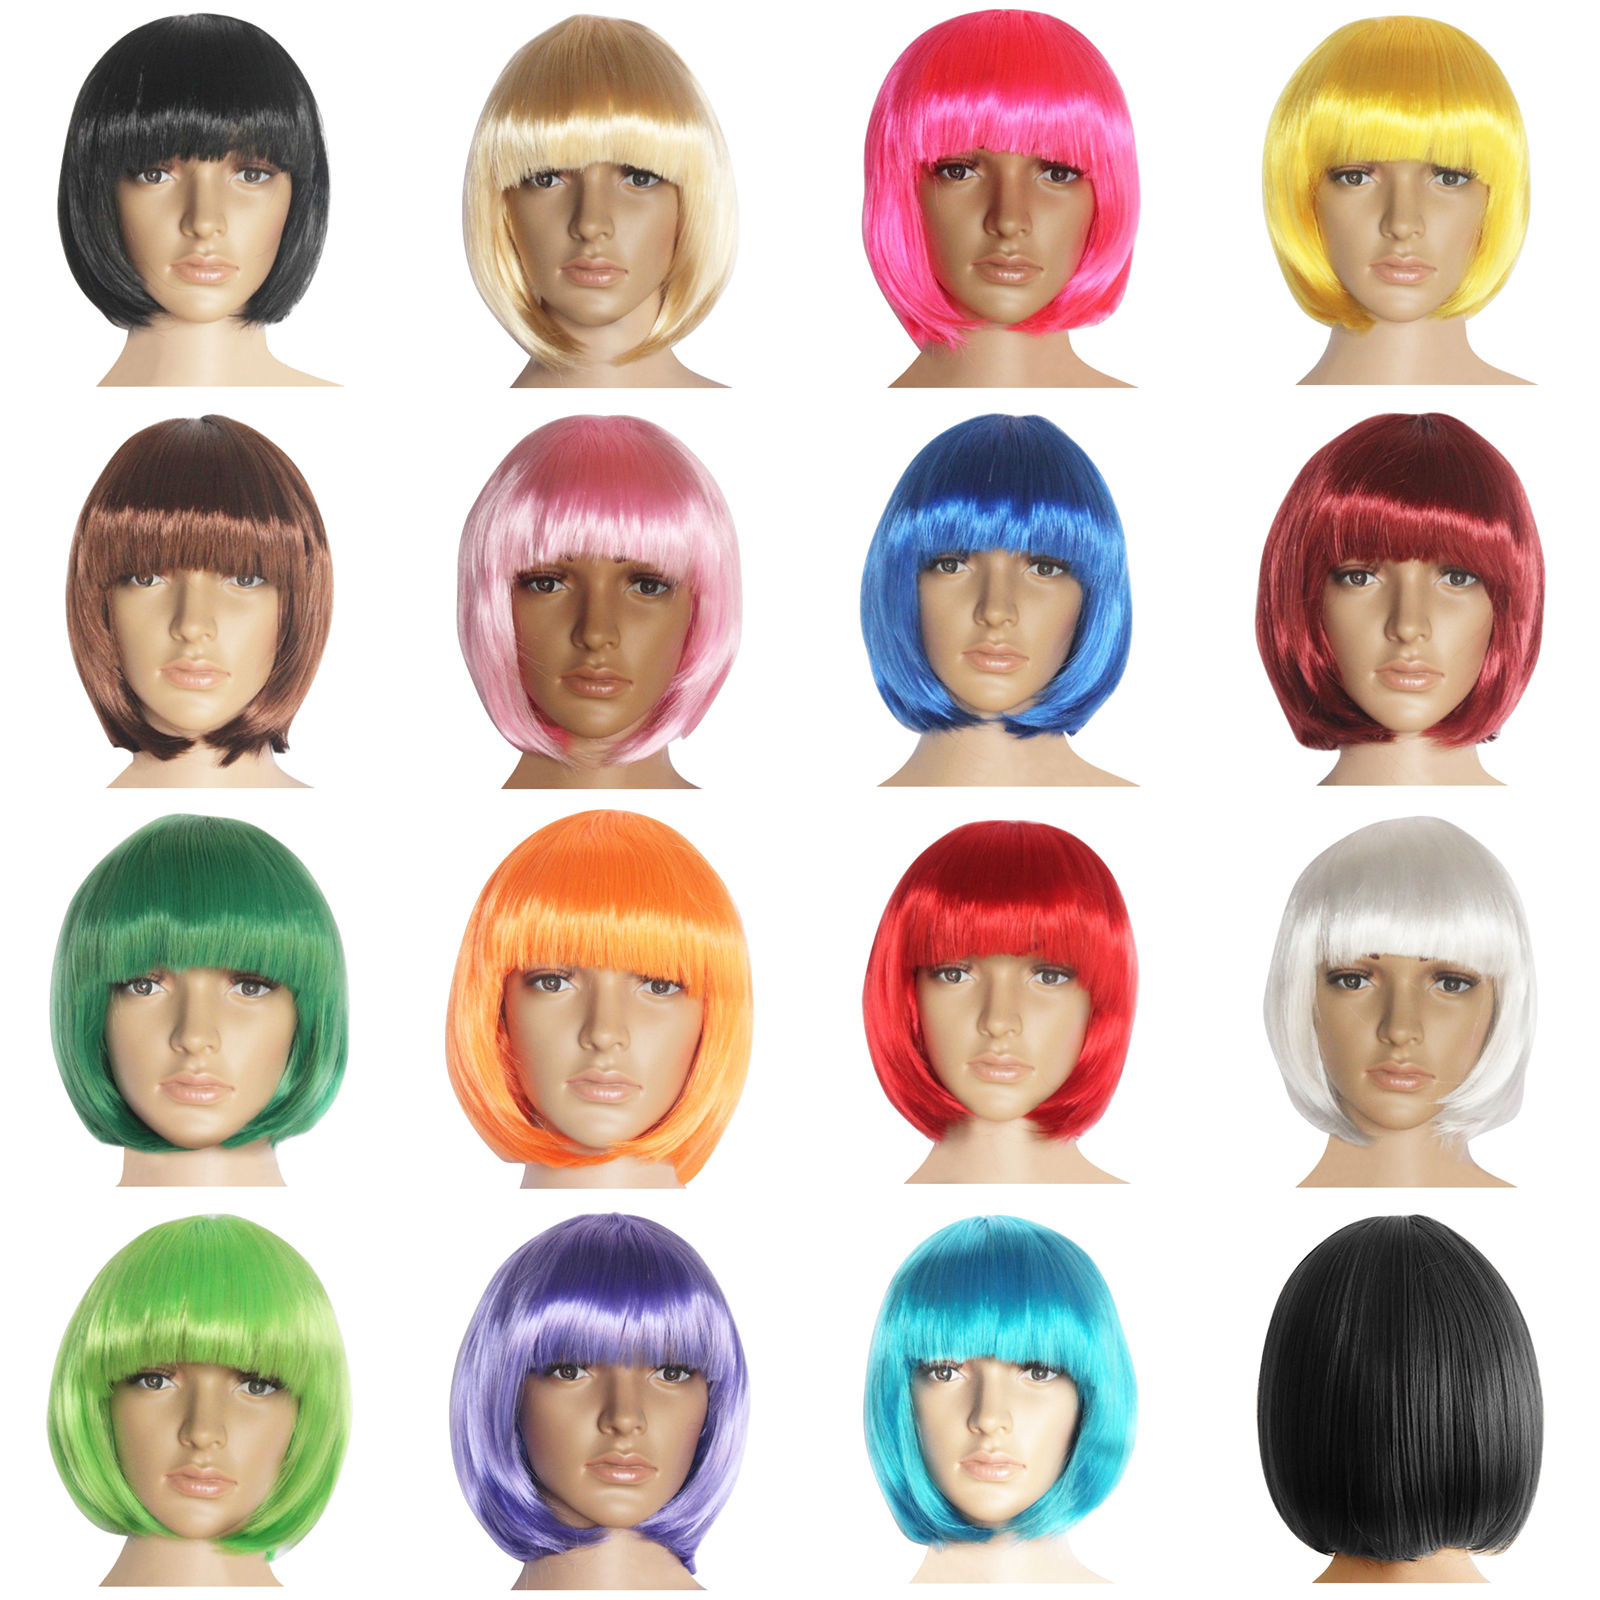 DYMADE Fashion New Women Lady Short Straight Hair Full Wigs Cosplay Party Bob Hair Wig 15color